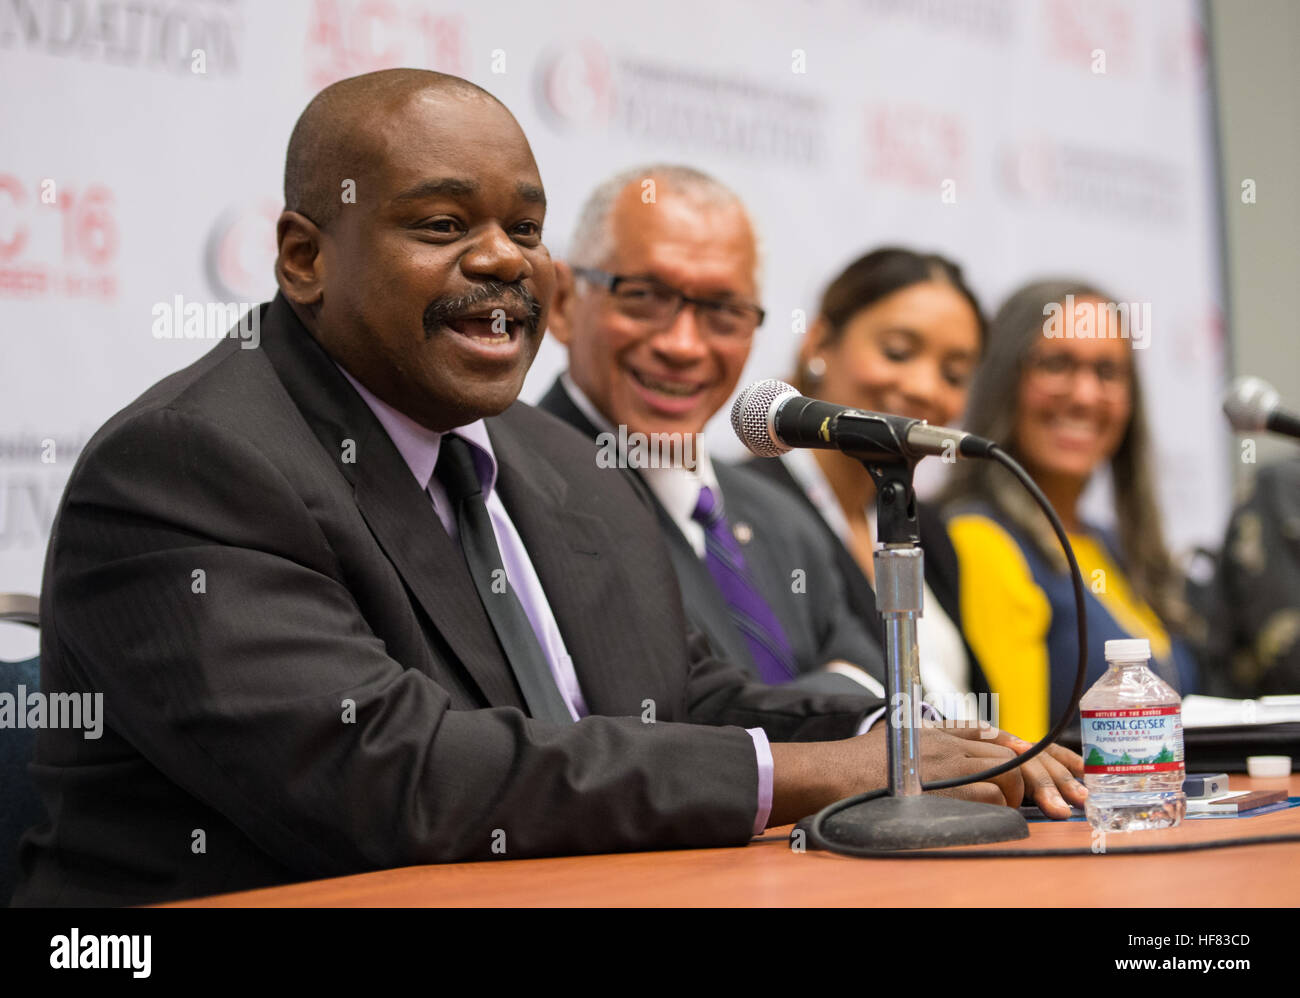 """Rudy Horne, math associate professor, Morehouse College, participates in a panel discussion on """"Women in - Stock Image"""